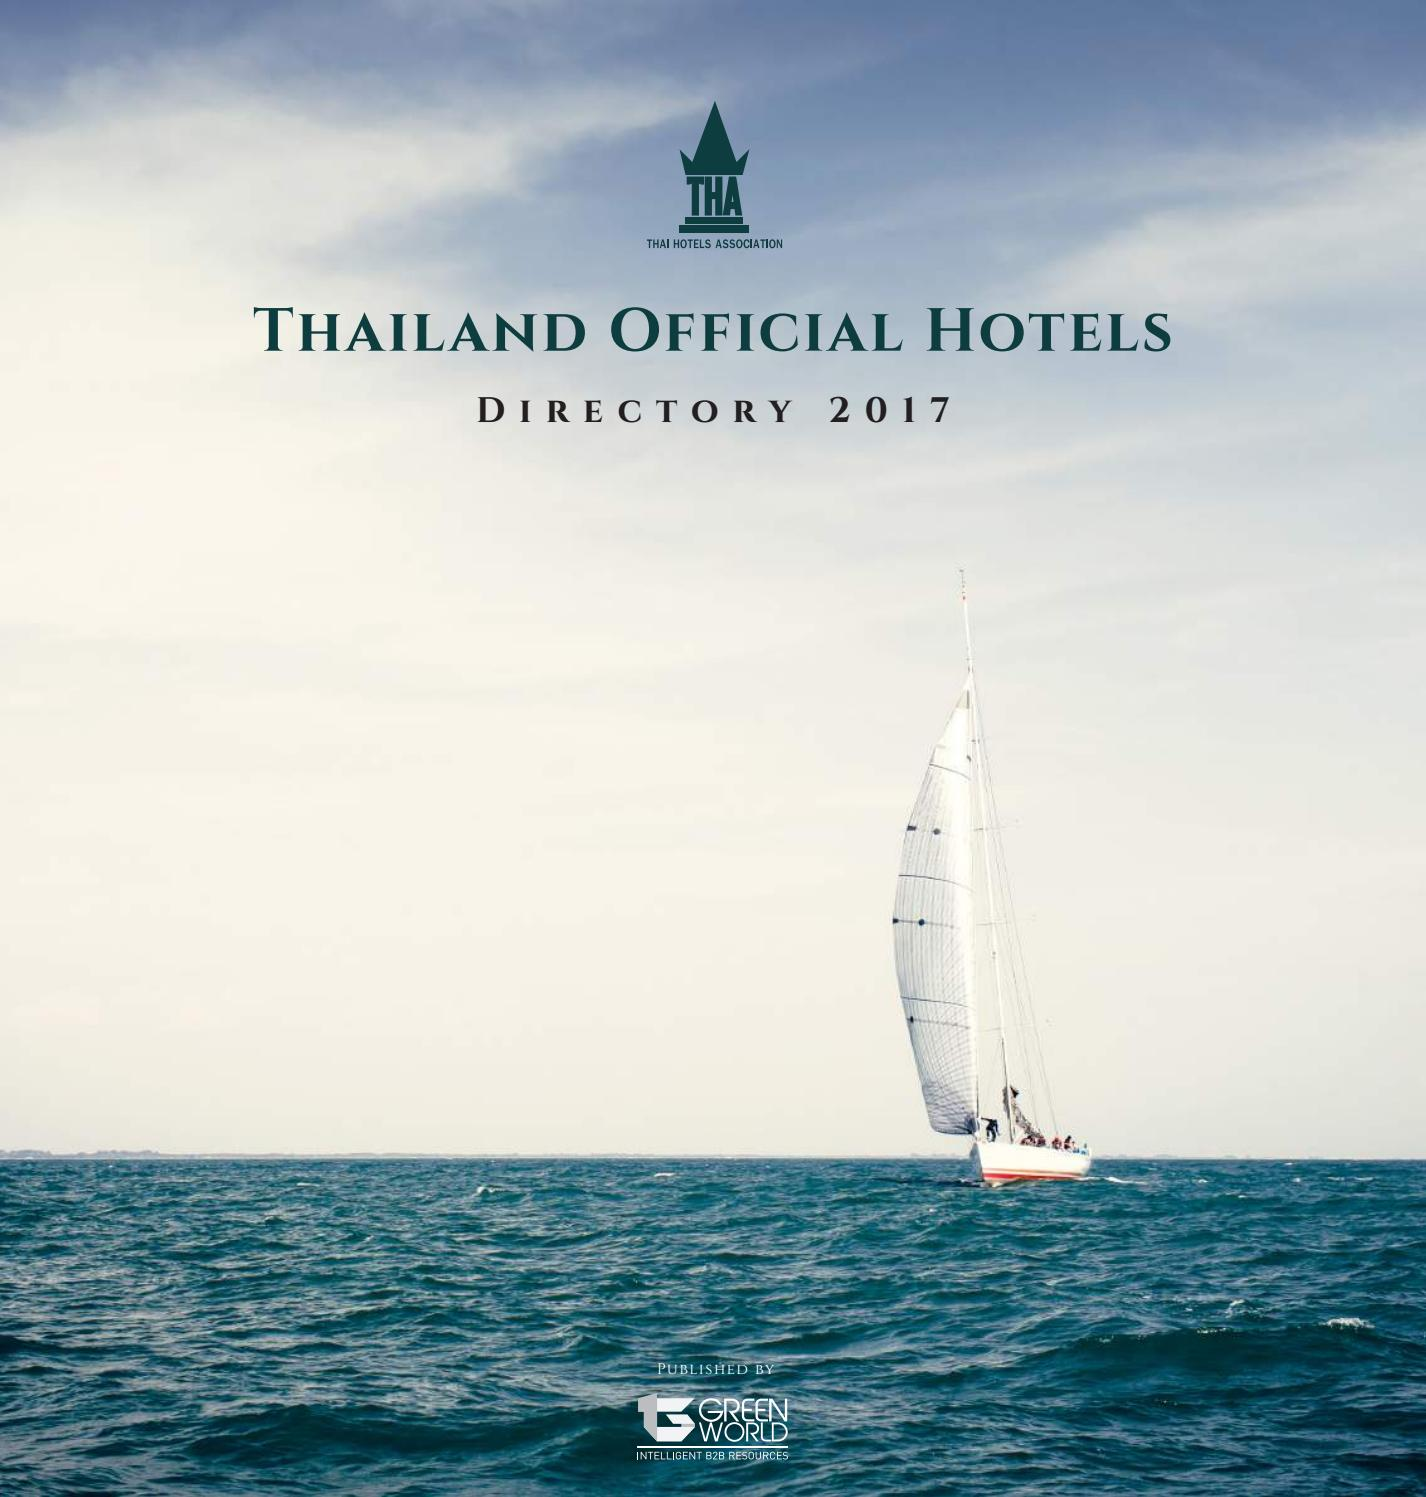 Thailand Official Hotels Directory 2017 by Green World Publication Company Limited - issuu